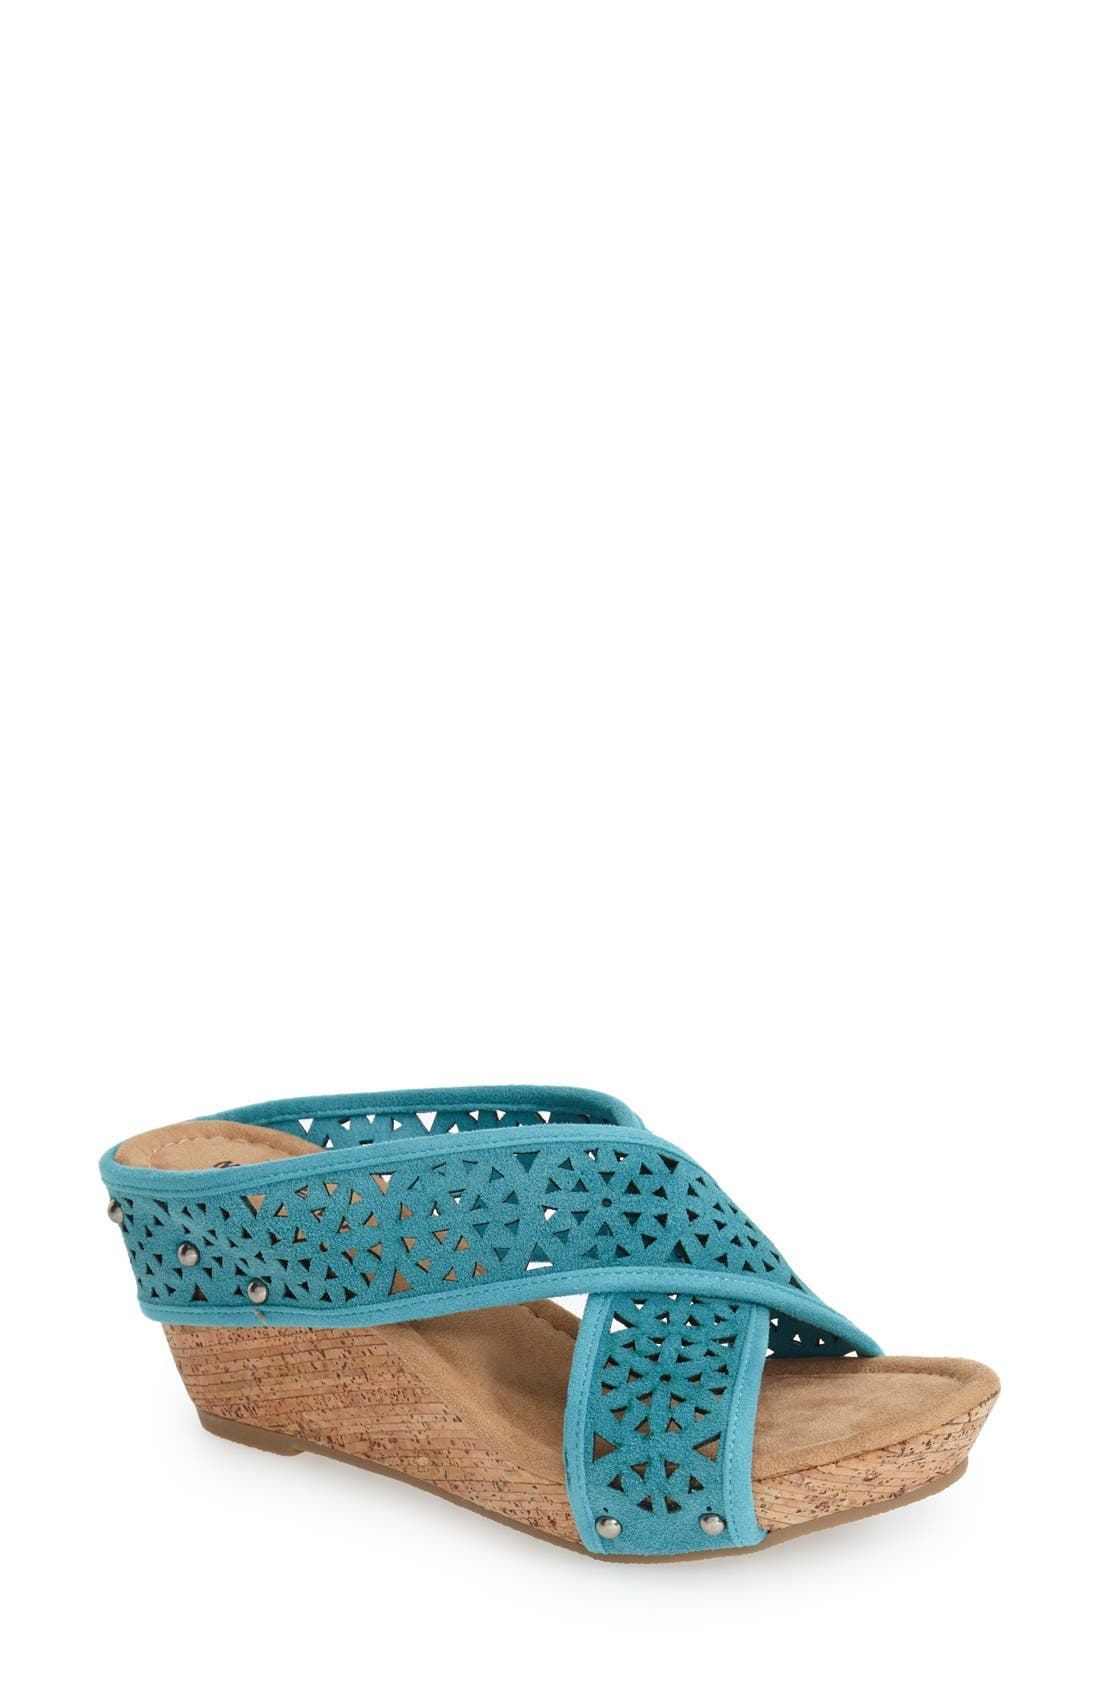 Alternate Image 1 Selected - Minnetonka 'Lainey' Sandal (Women)